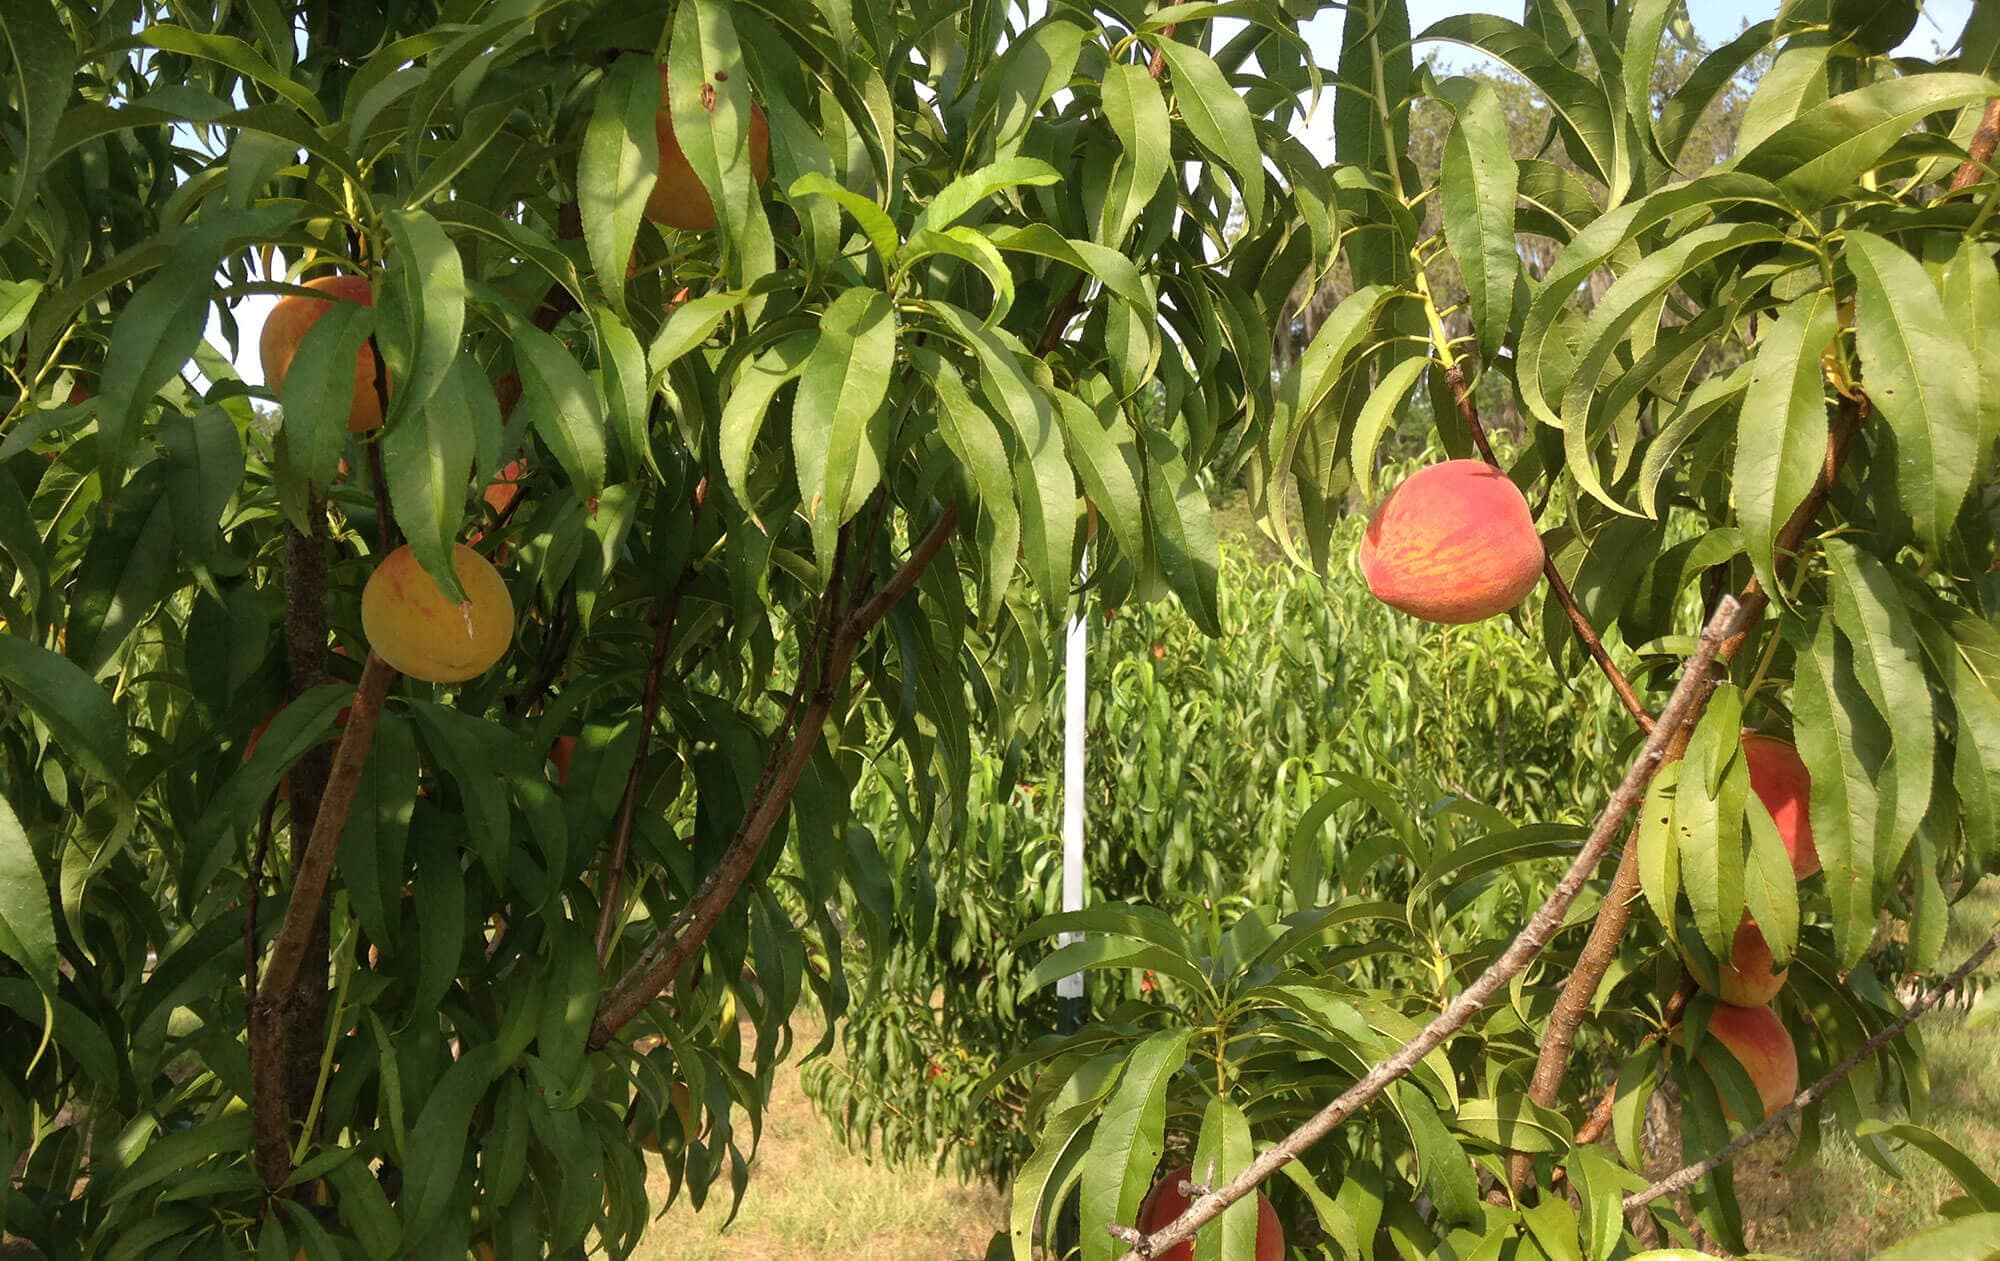 peaches on tree at Oponay Farms in Lakeland, FL